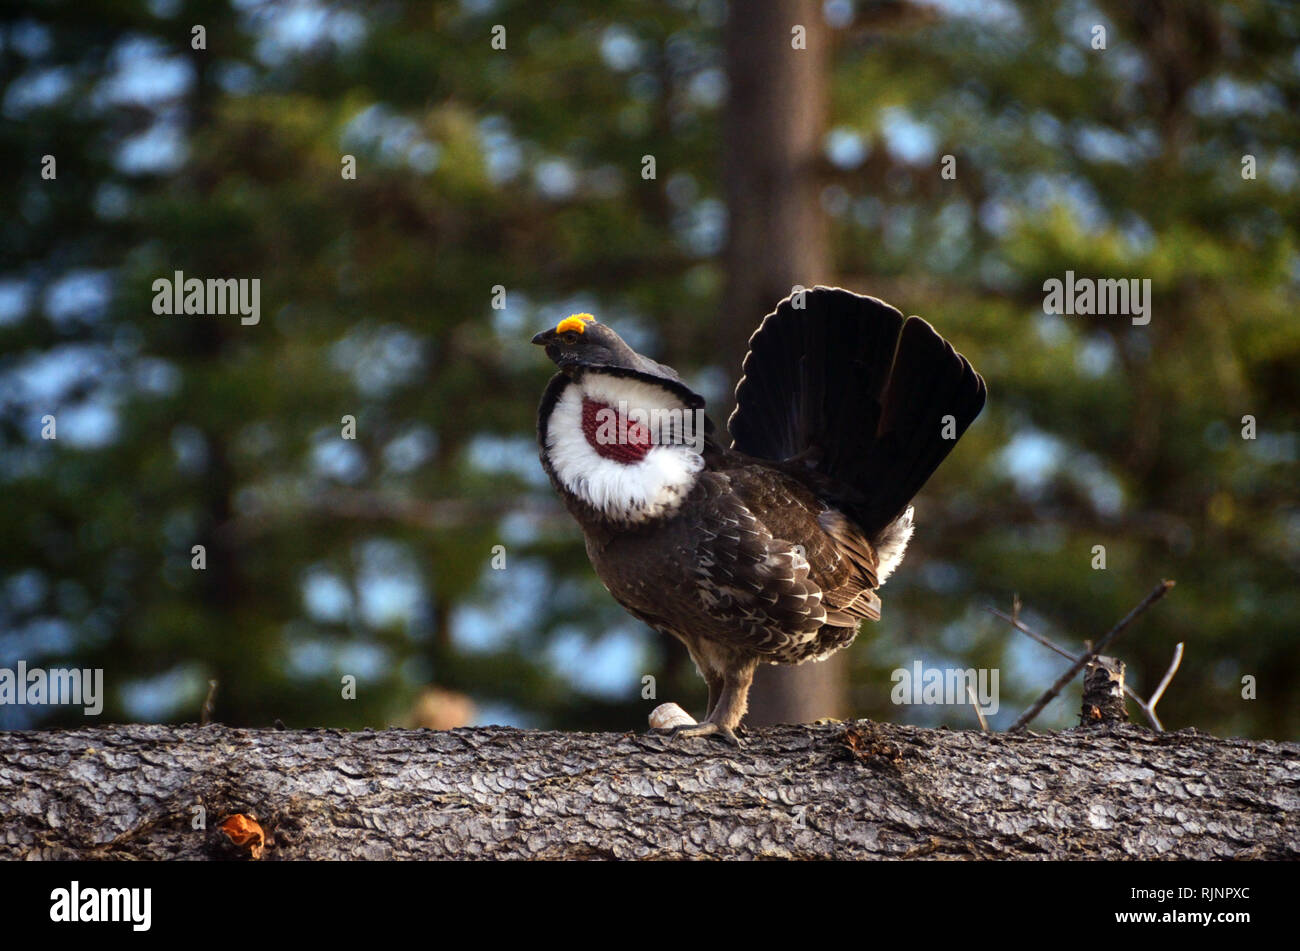 Male dusky (blue) grouse during mating season in spring. Purcell Mountains in the Kootenai National Forest, Montana. Stock Photo